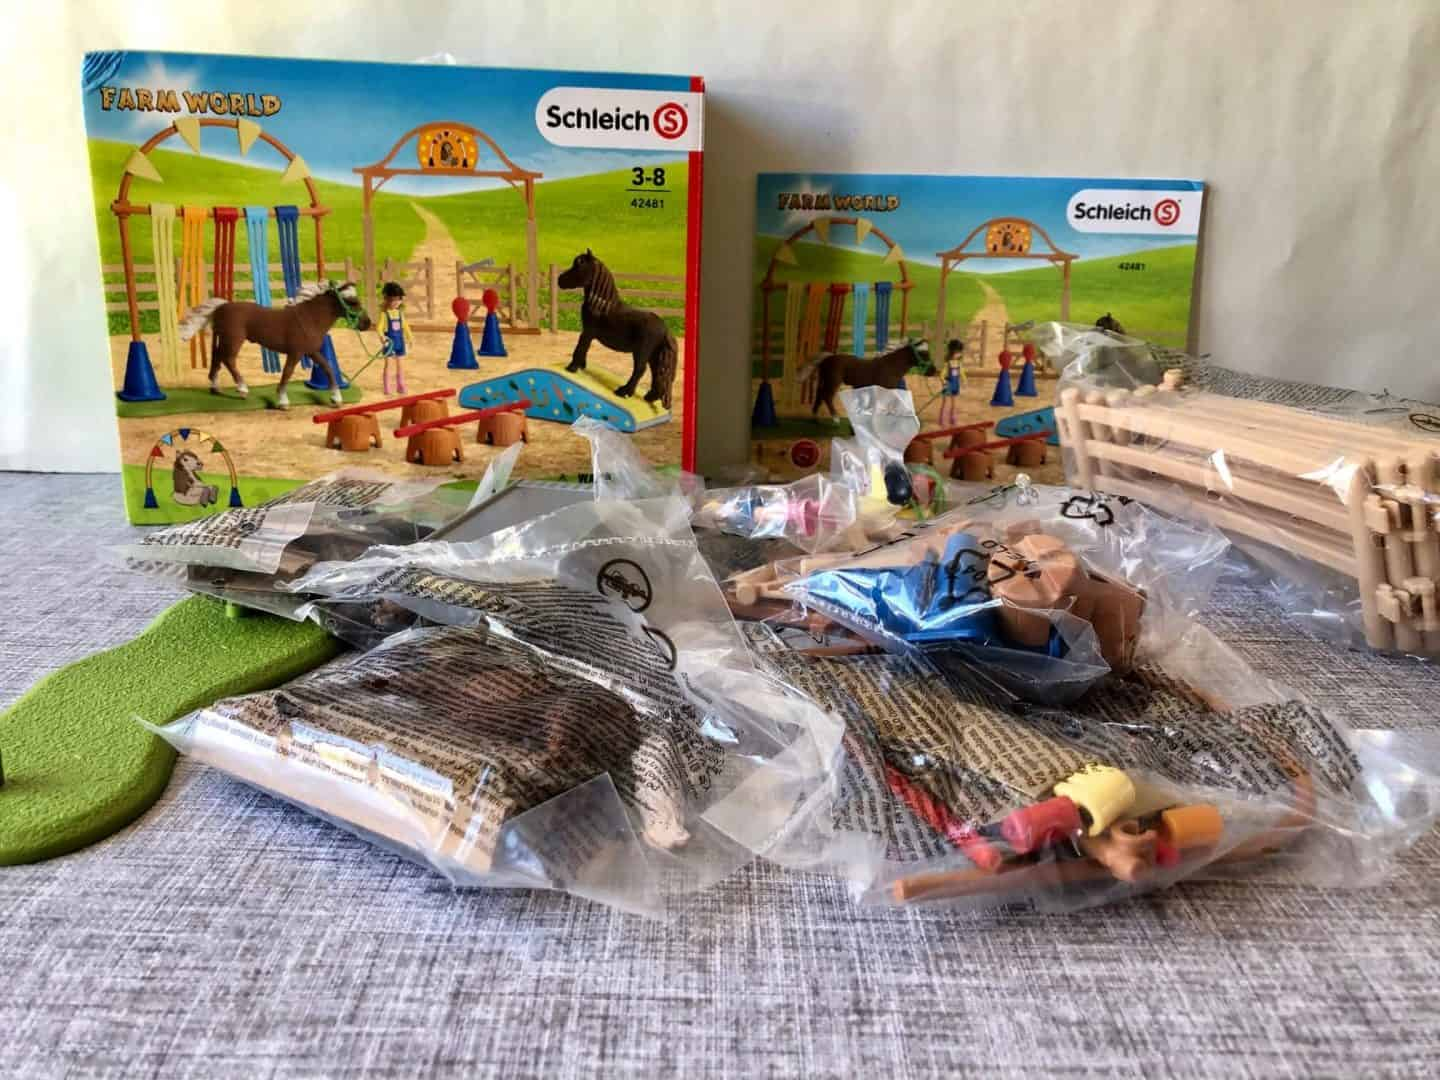 Schleich Pony Agility Training Play Set Review packaging